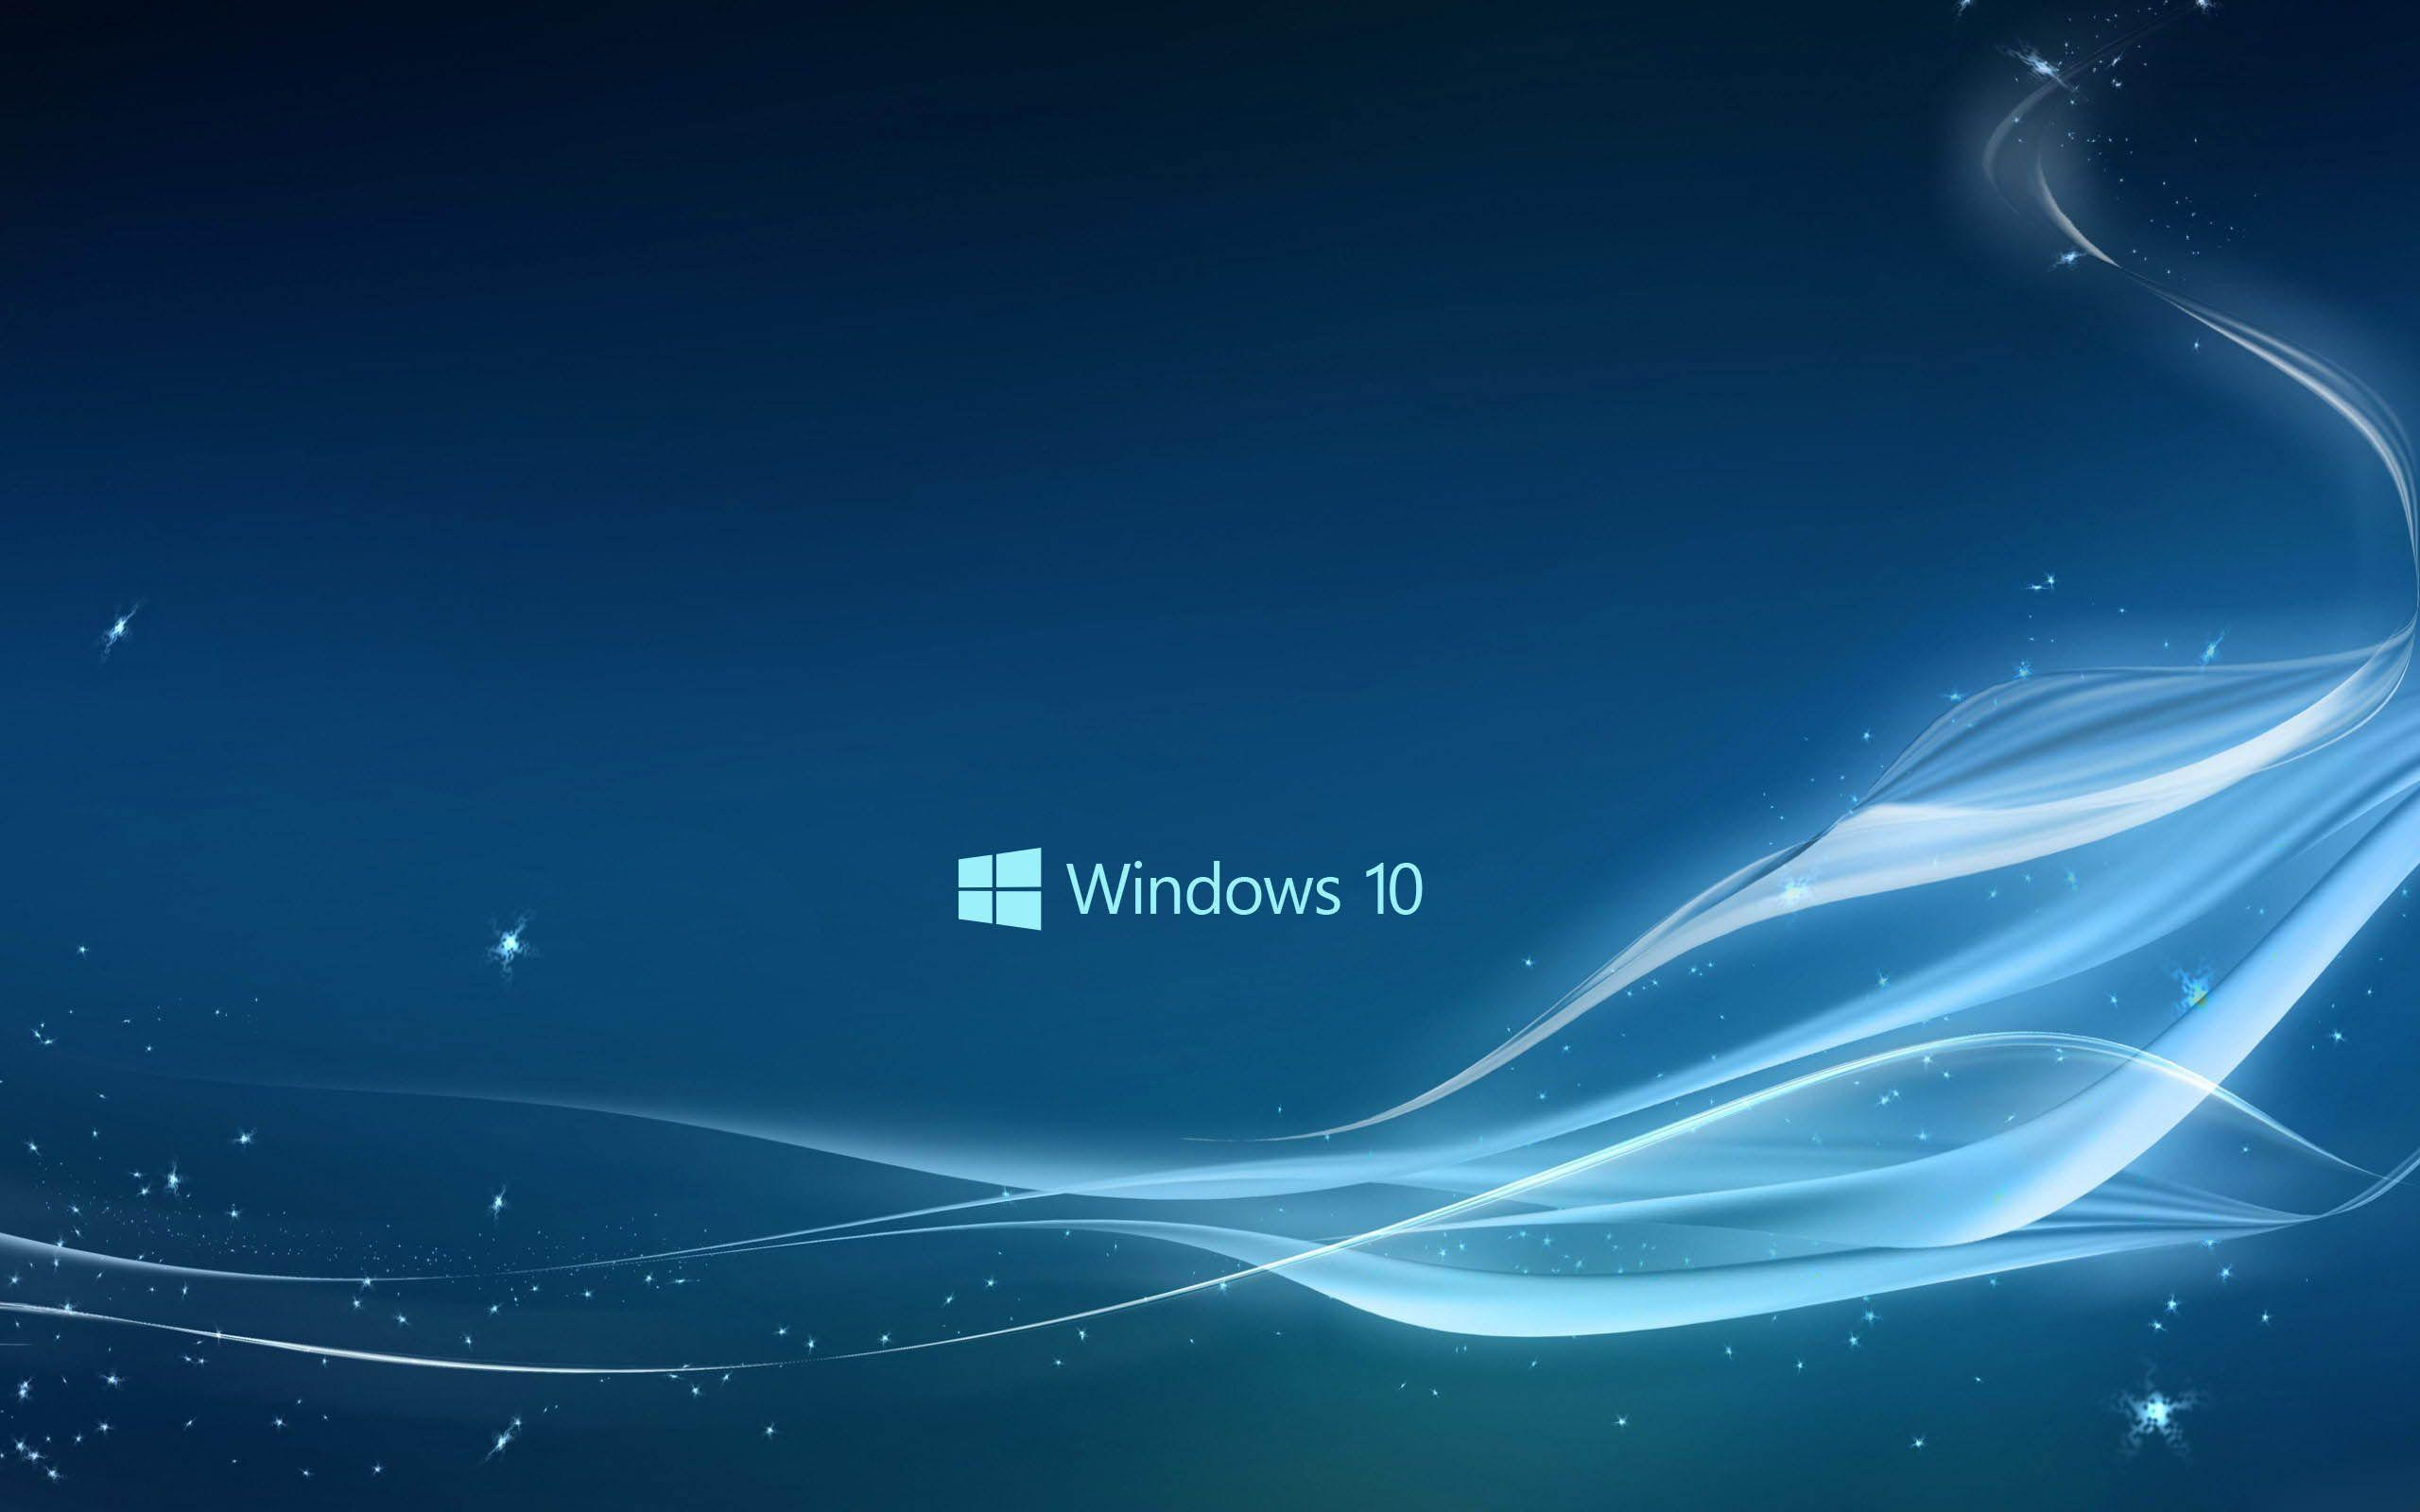 Cool Windows 10 Wallpapers Wallpaper Cave